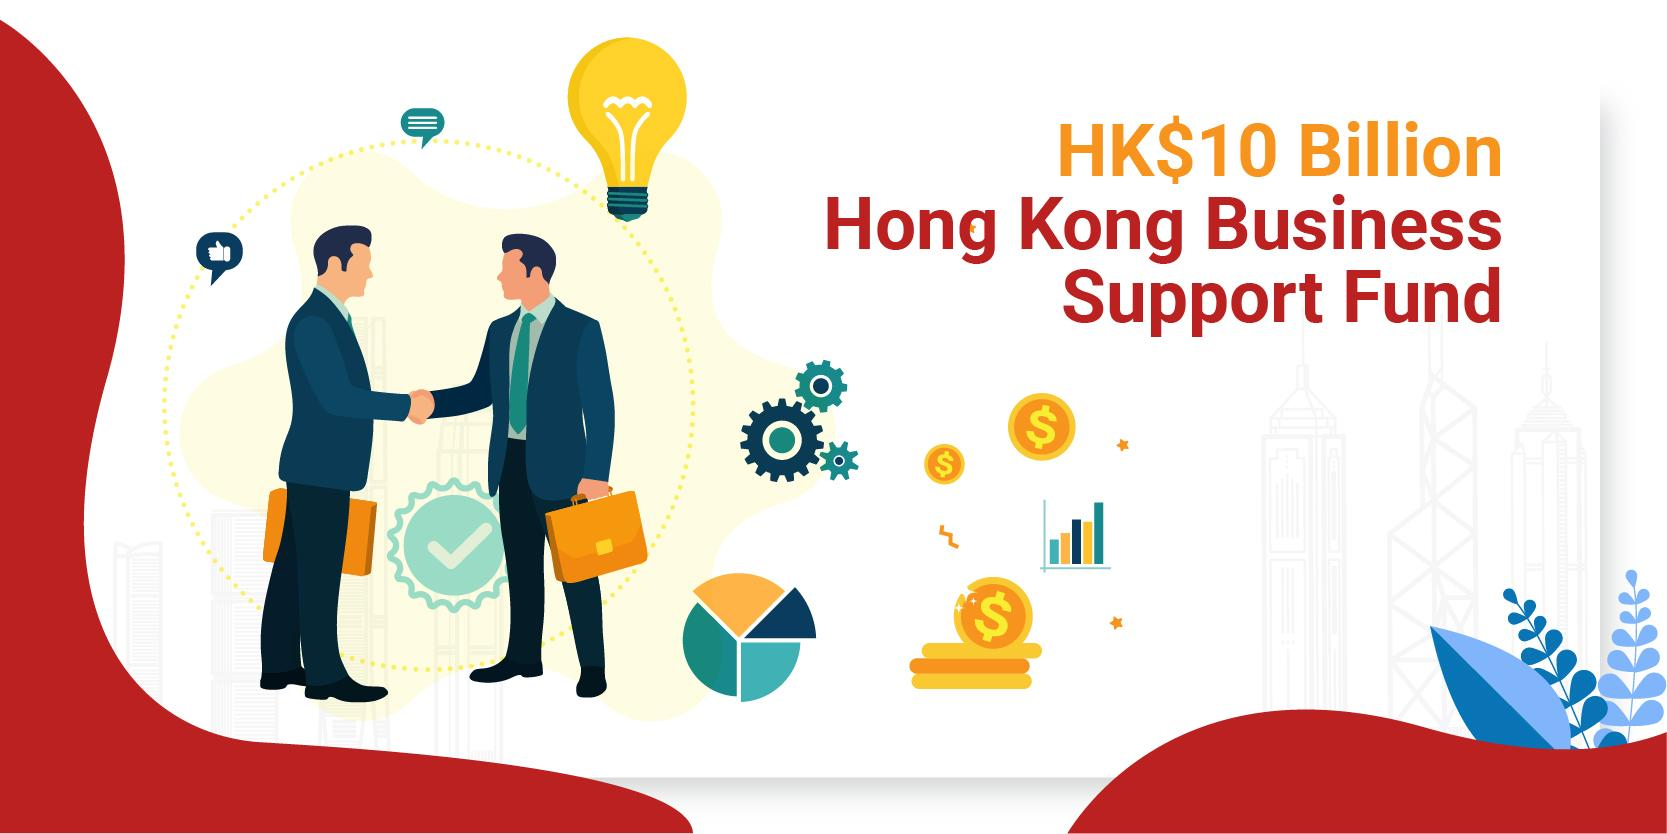 HK$120 Billion Hong Kong Business Support Fund